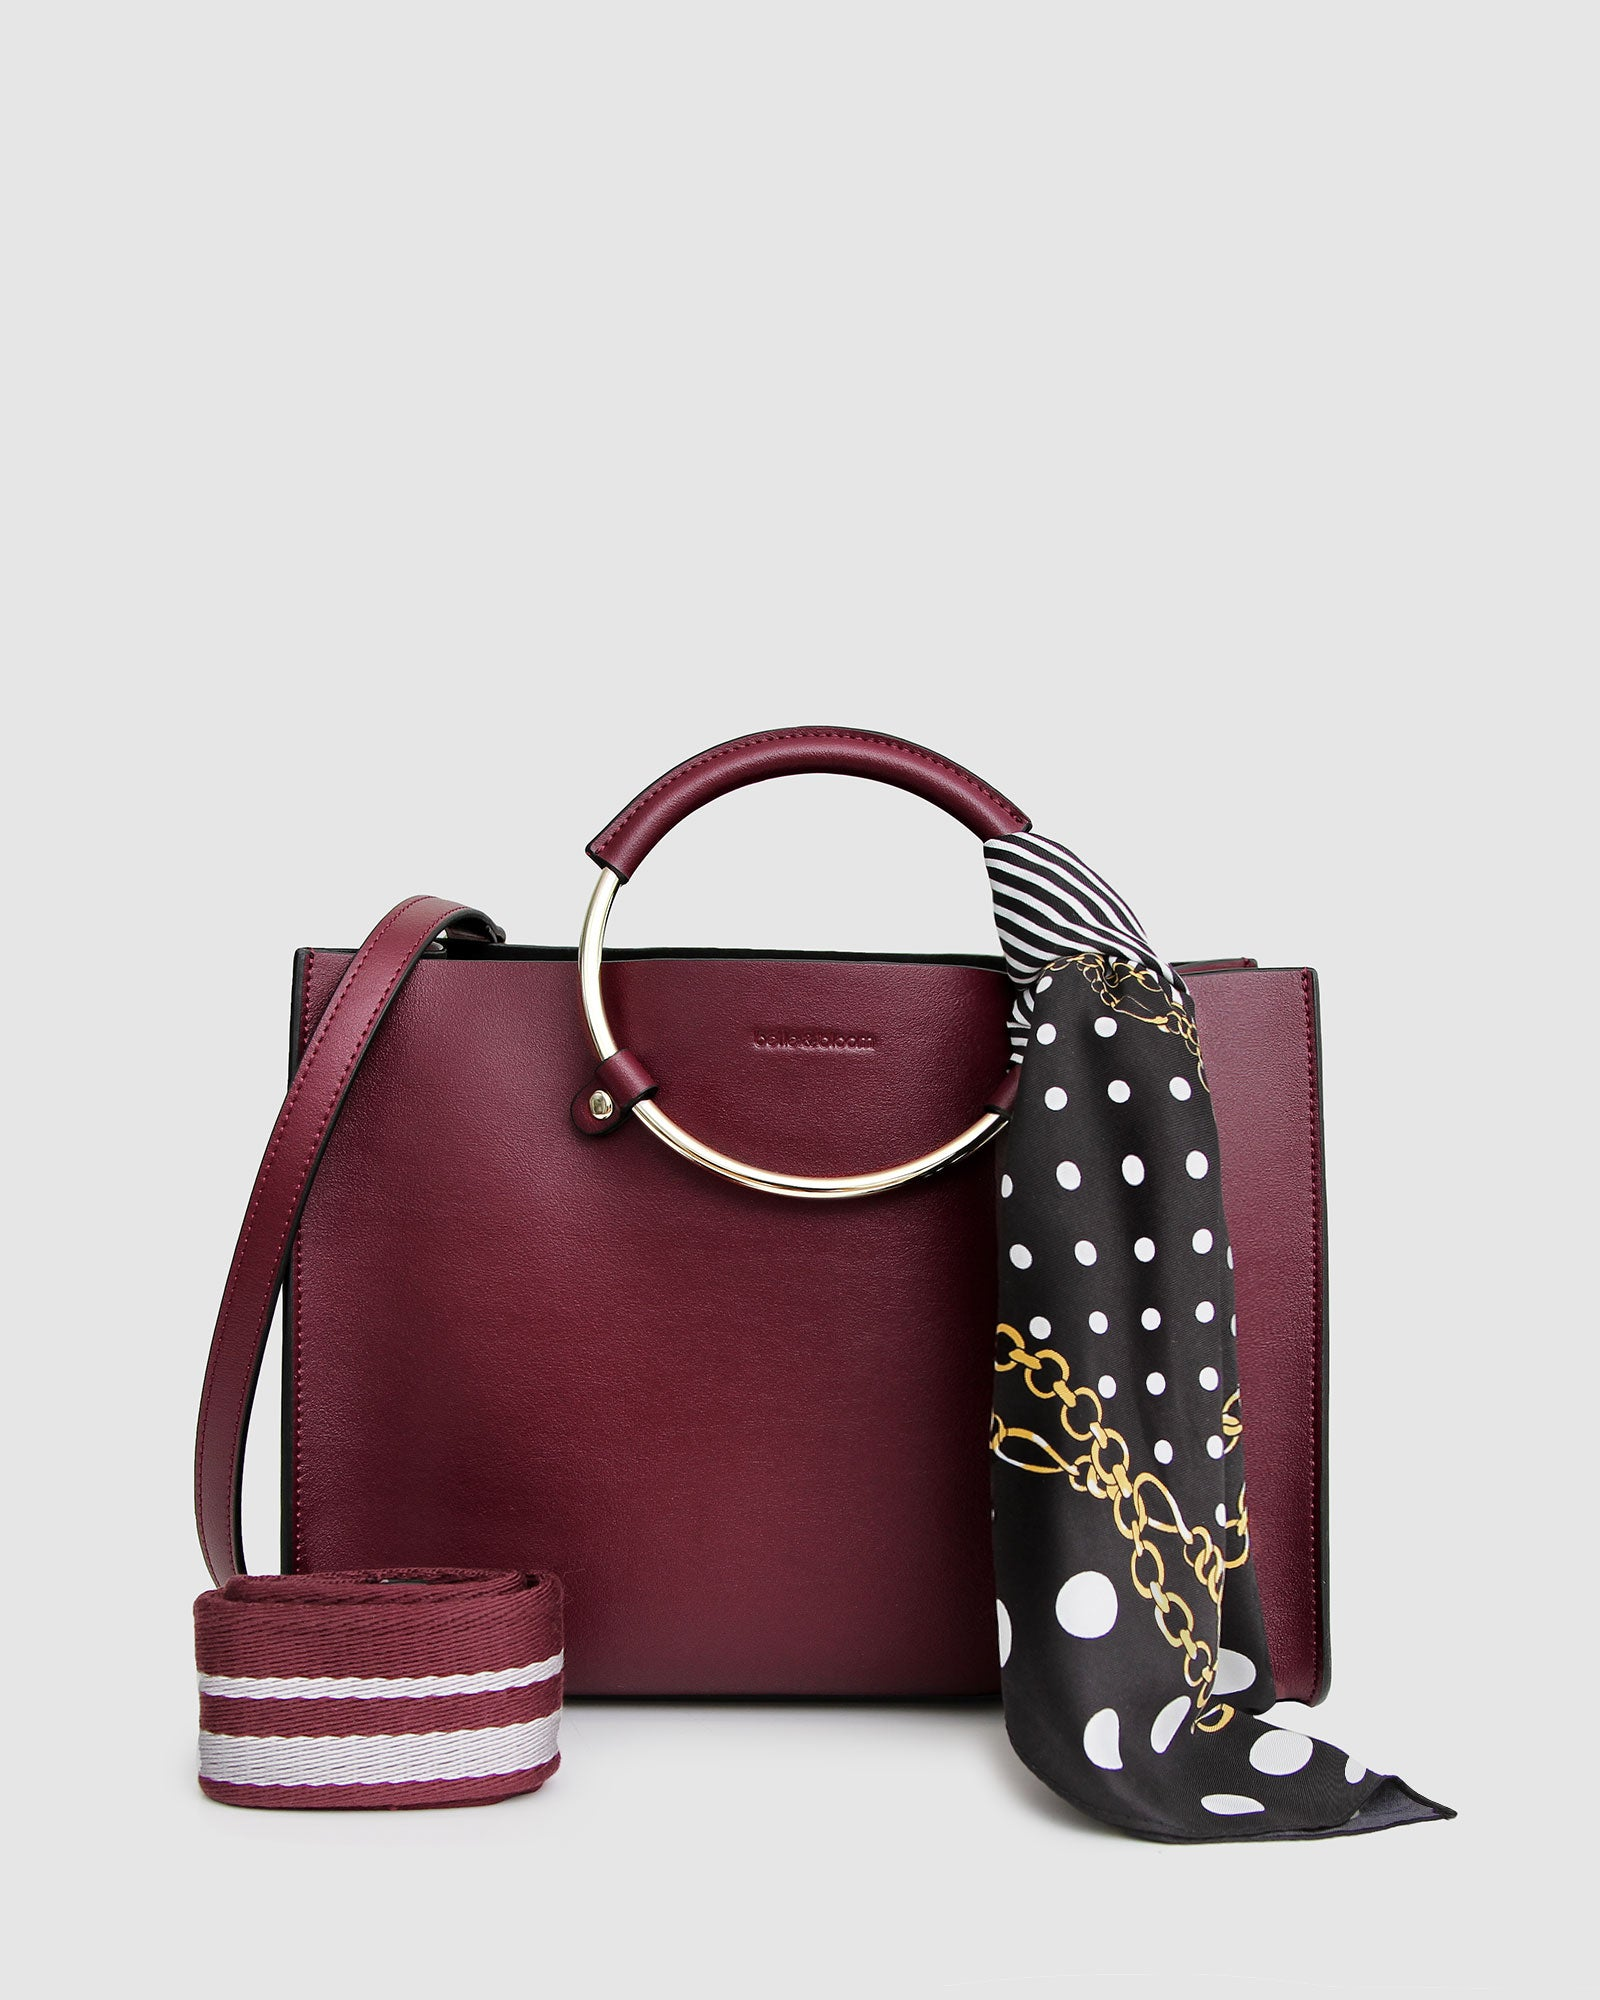 Palm Beach Satchel With Scarf - Wine